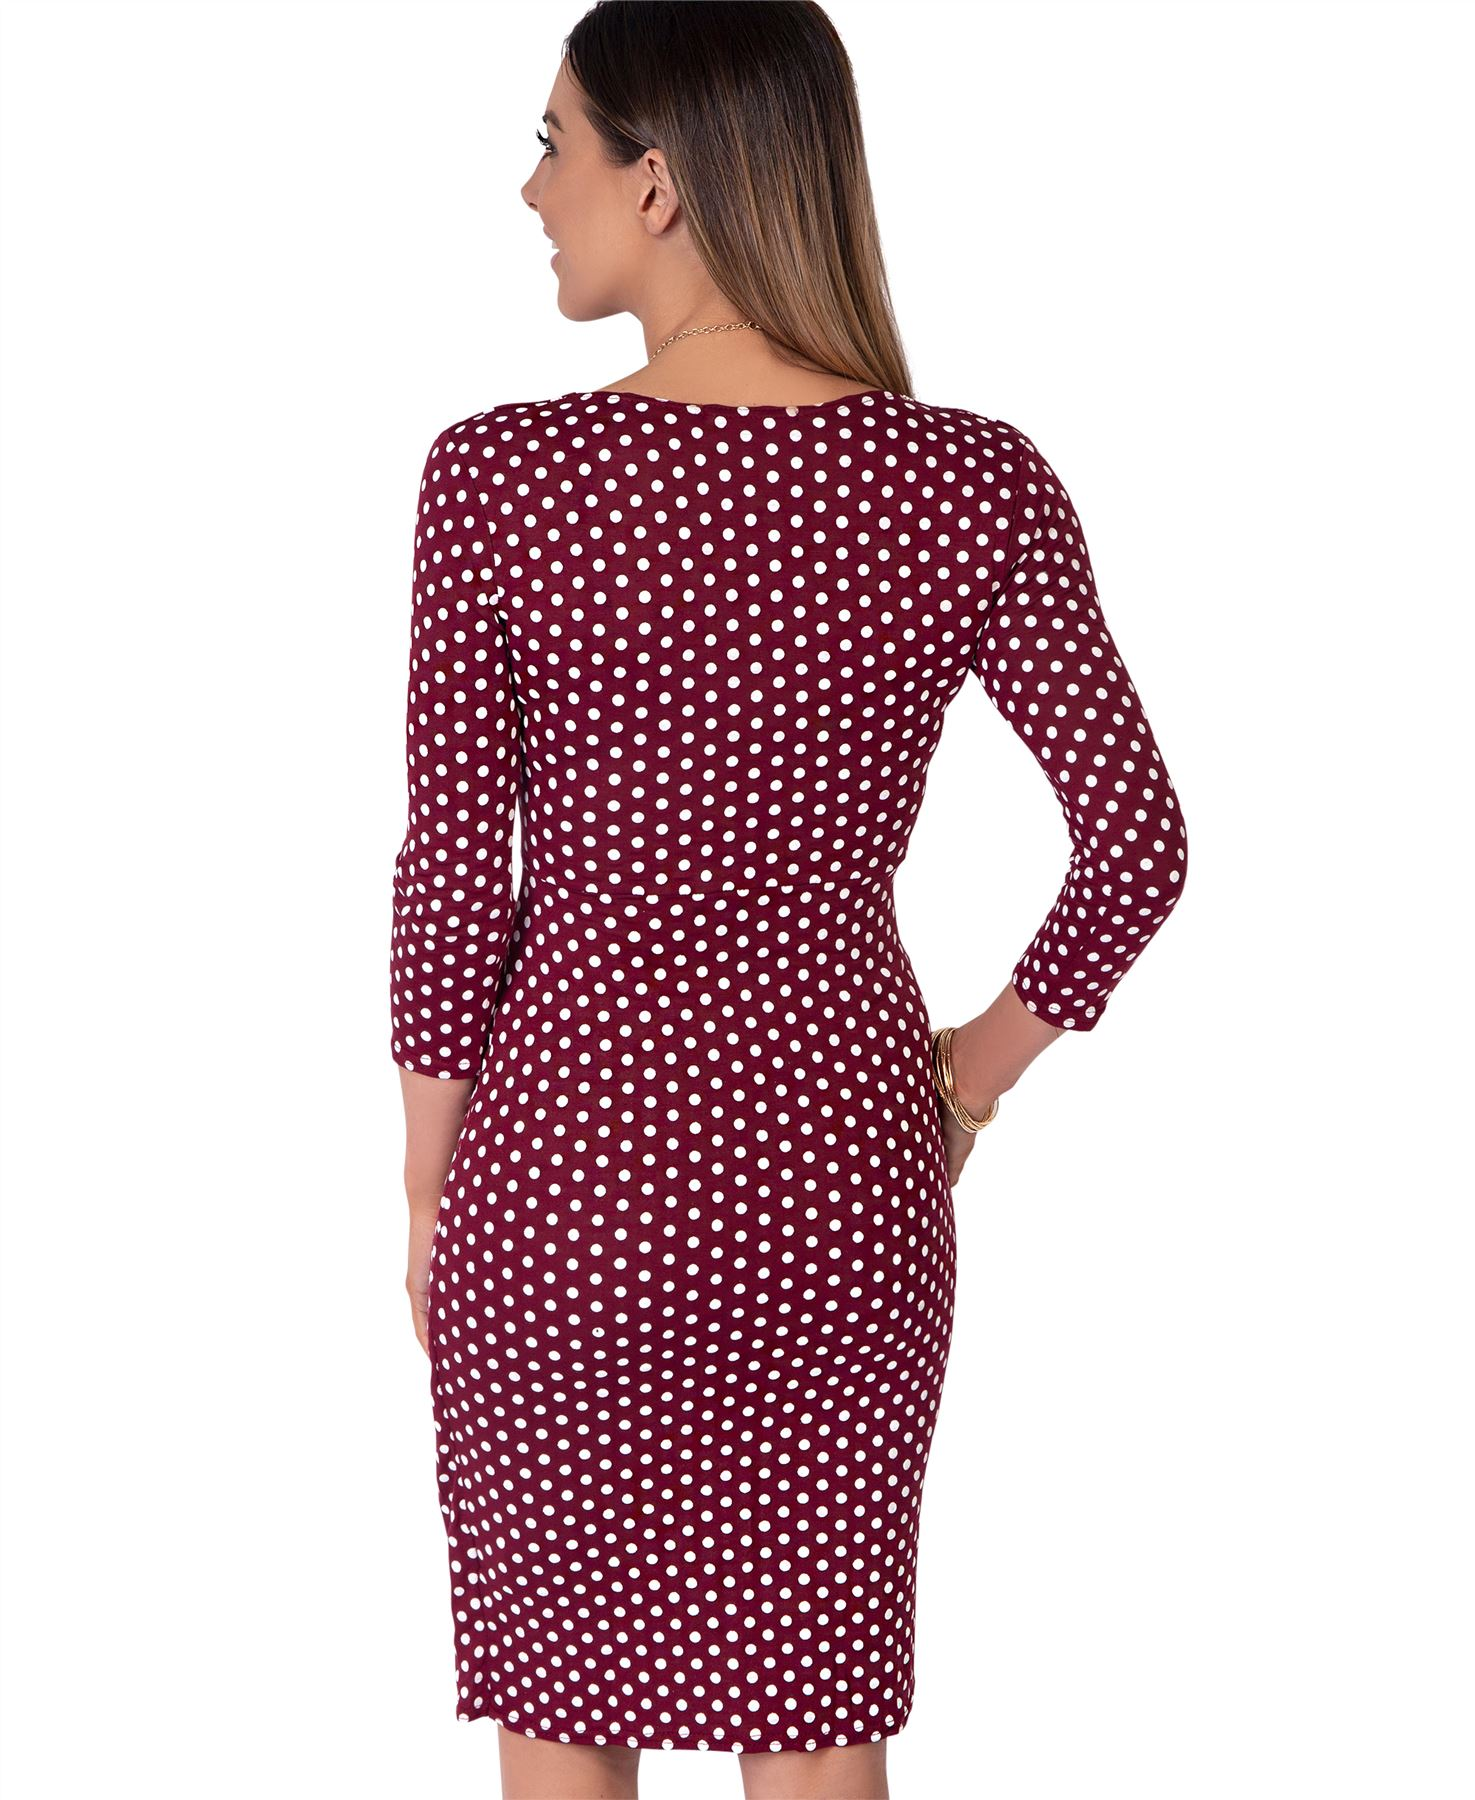 Womens-Polka-Dot-Dress-Pleated-Skirt-Wrap-Front-Mini-V-Neck-Top-Swing thumbnail 43